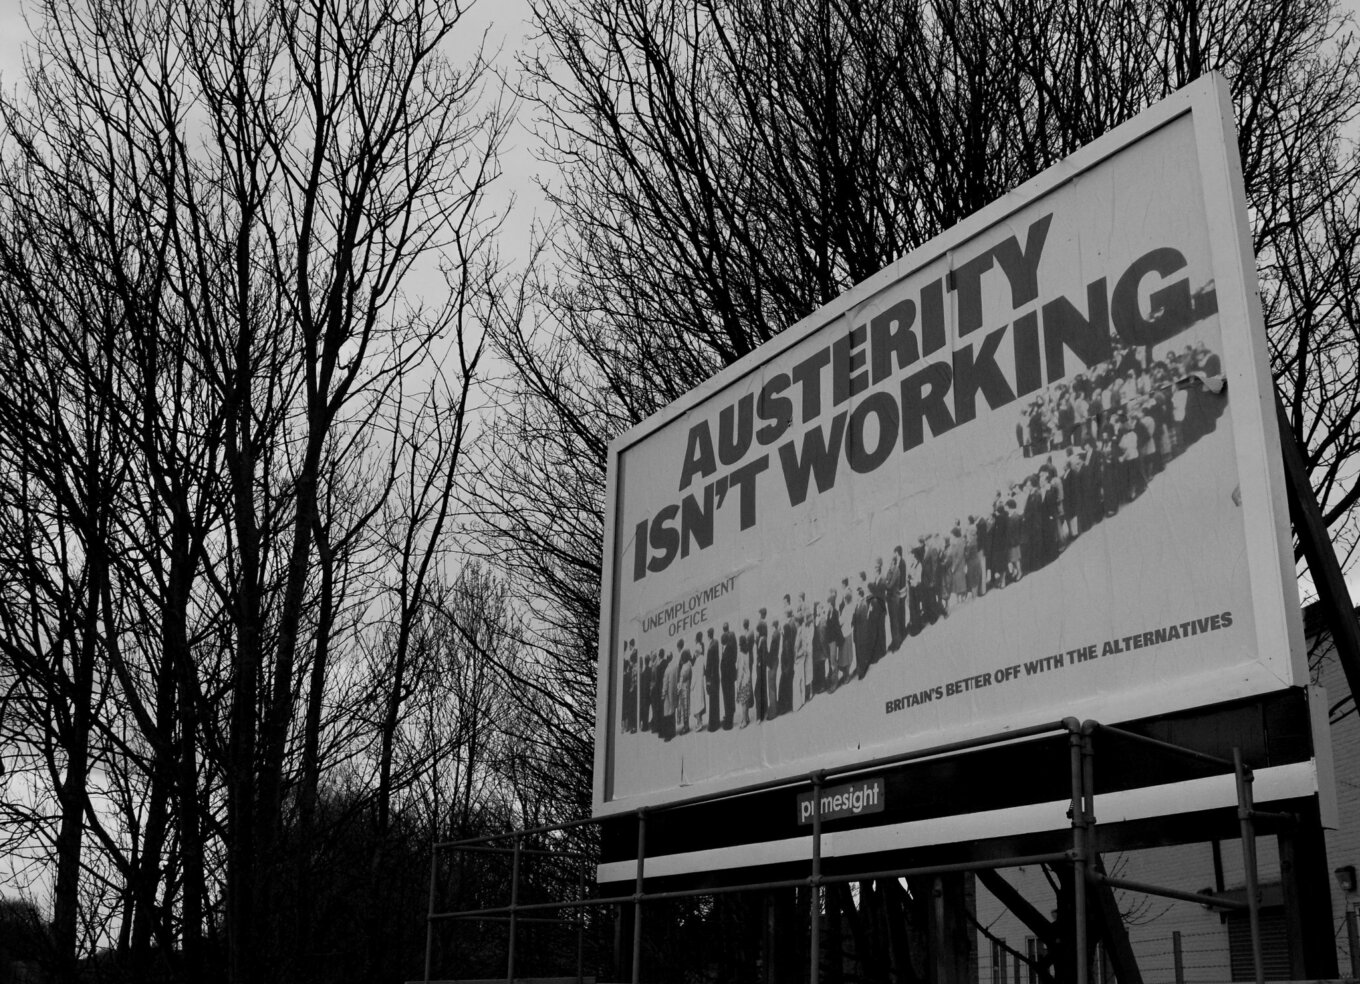 A billboard with the words Austerity Isn't Working